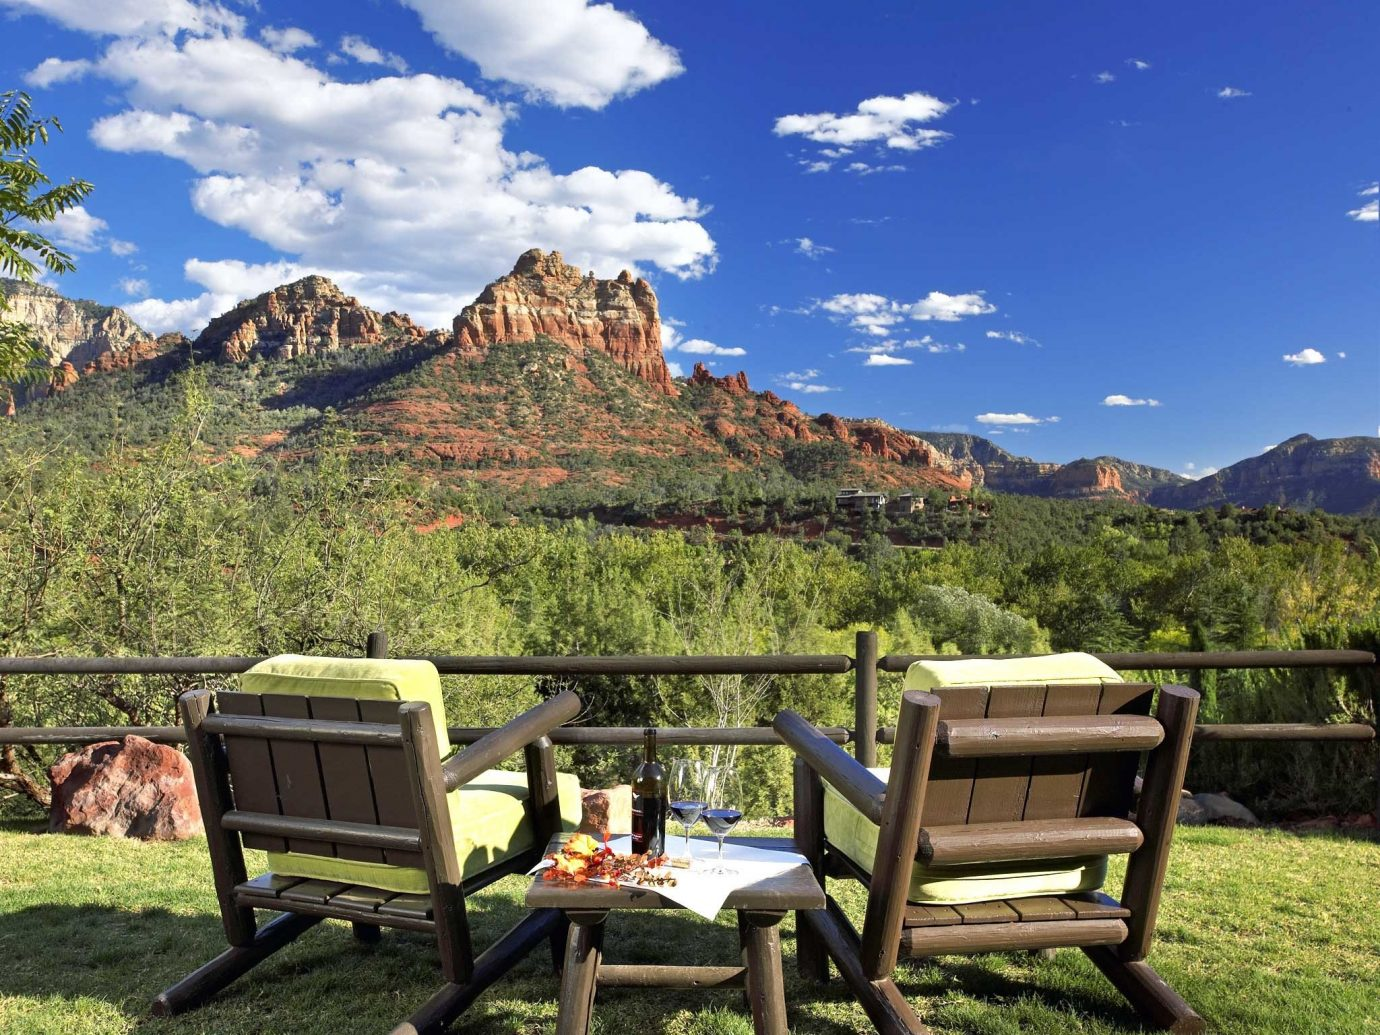 Exterior Mountains Outdoors Romance Romantic Scenic views Trip Ideas grass sky outdoor mountain vacation estate meadow seat chair